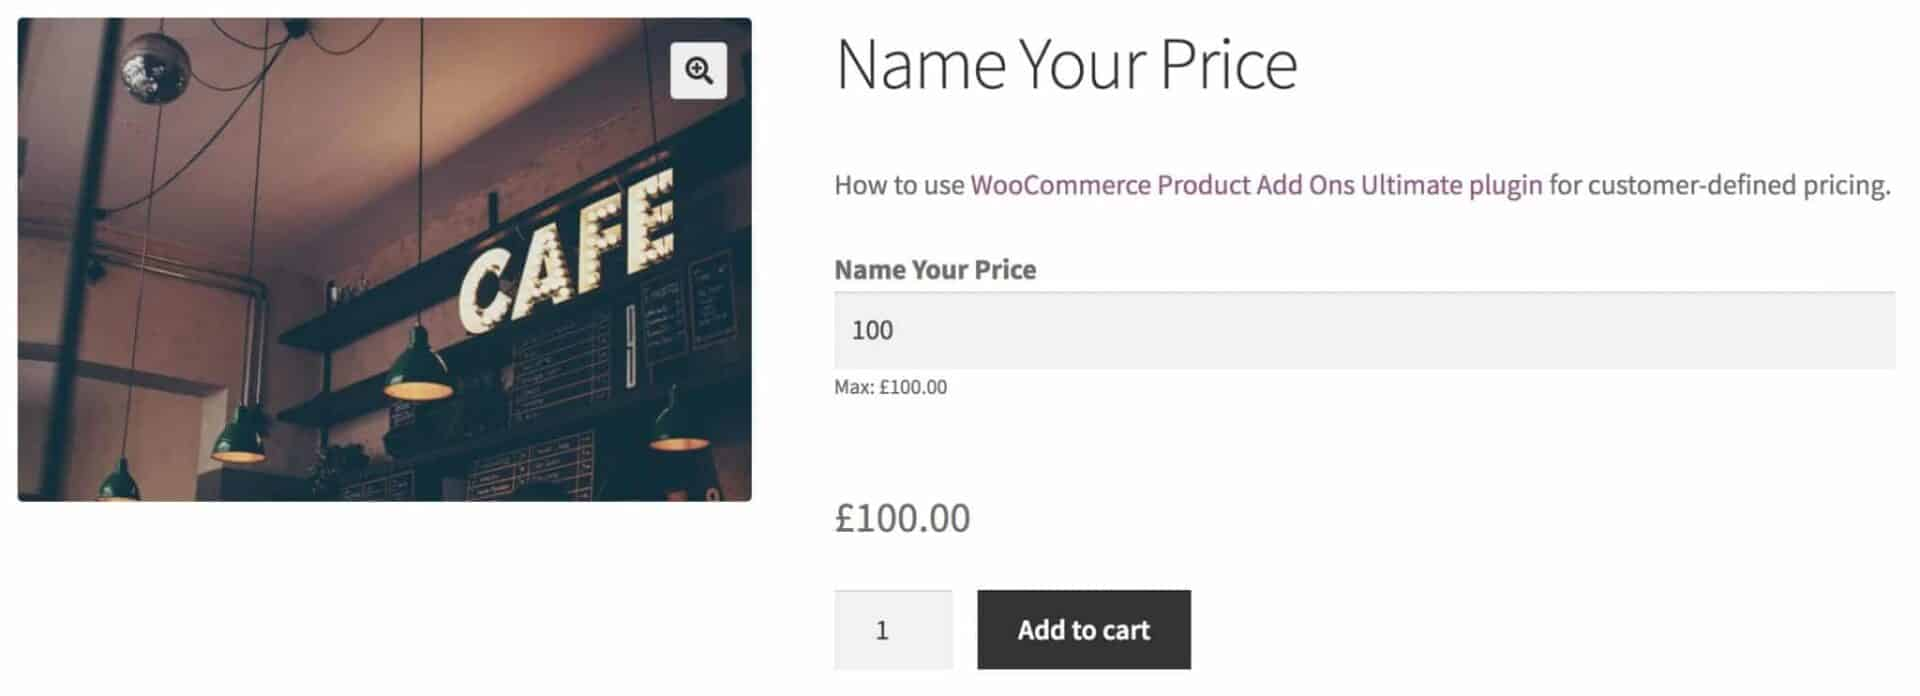 WooCommerce name your price product